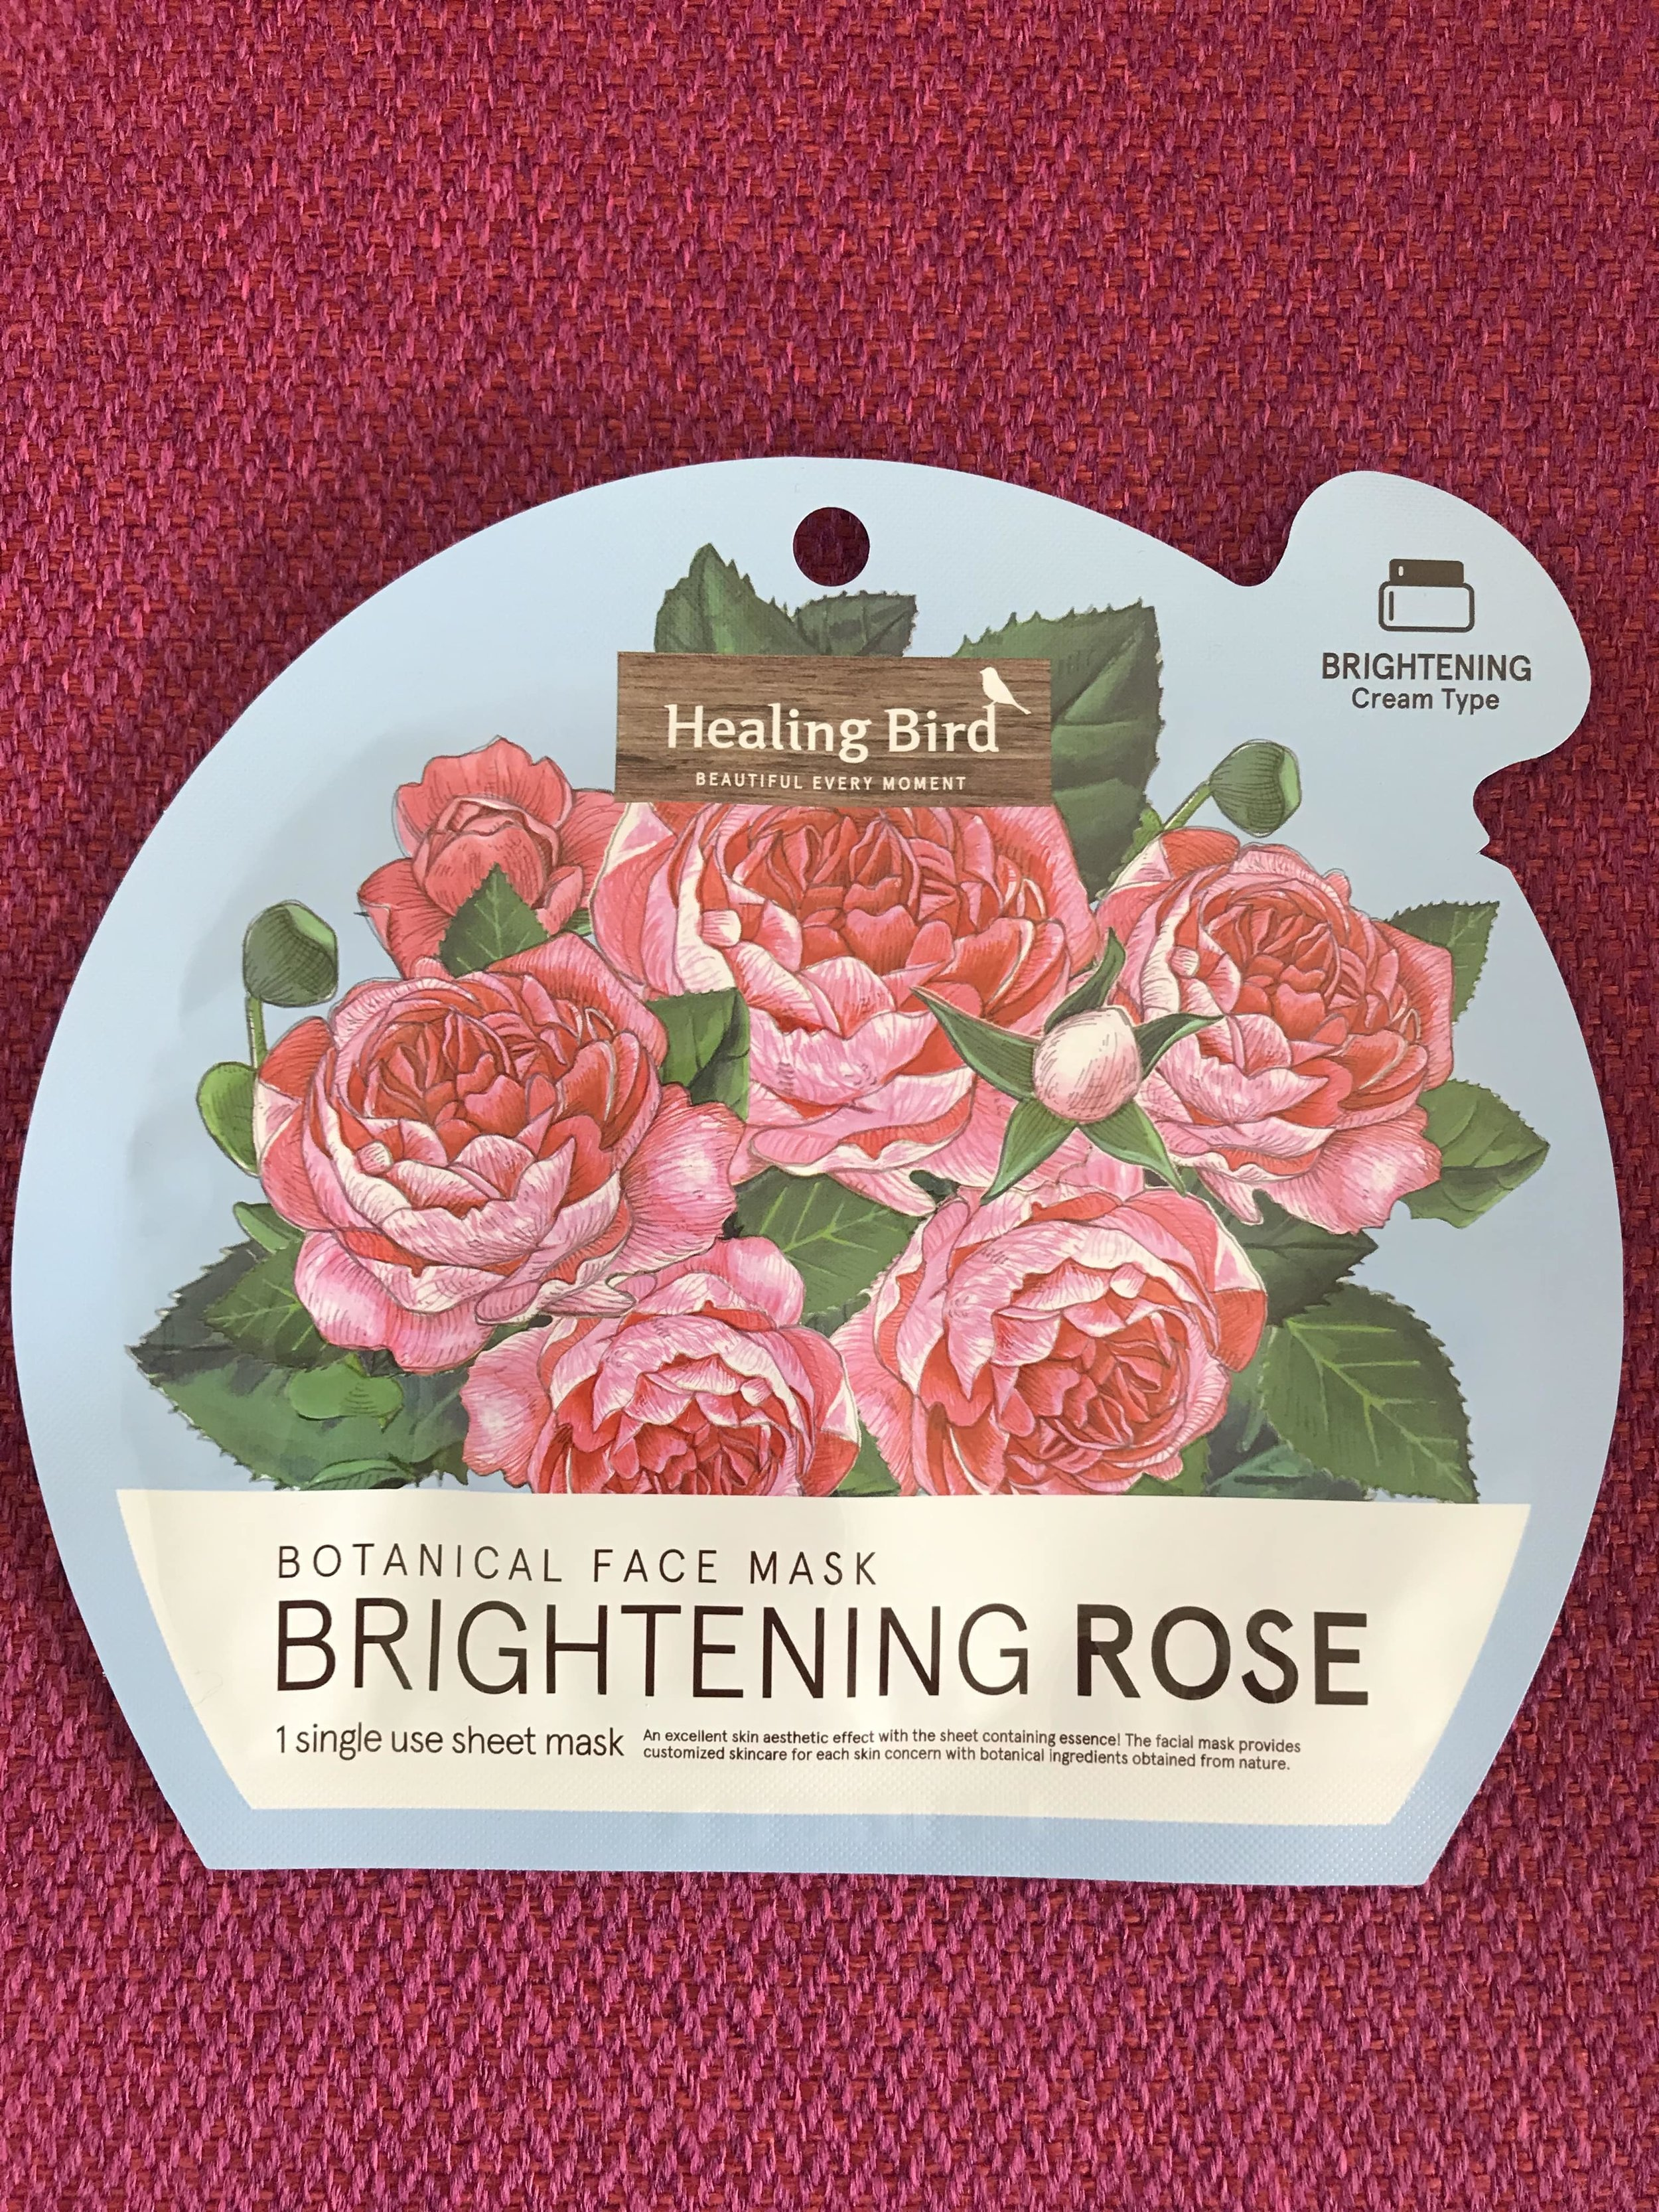 Healing-Bird-Brightening-Rose-sheet-mask-packaging-min.jpg